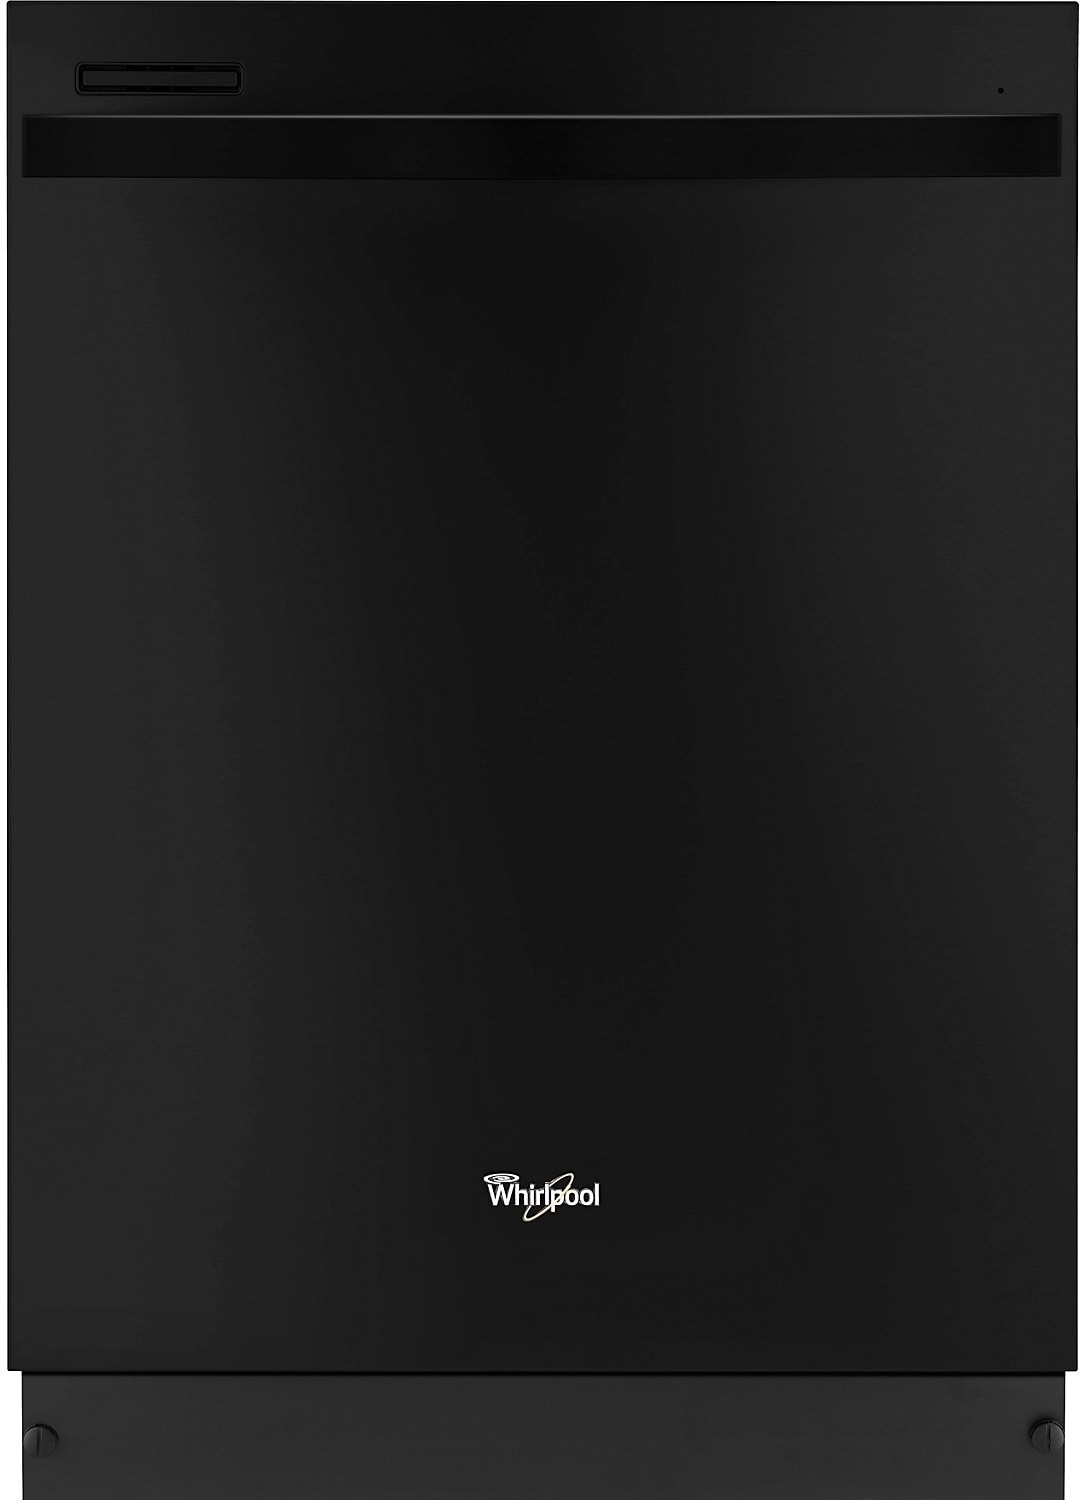 Clean-Up - Whirlpool Gold® Built-In Dishwasher - Black